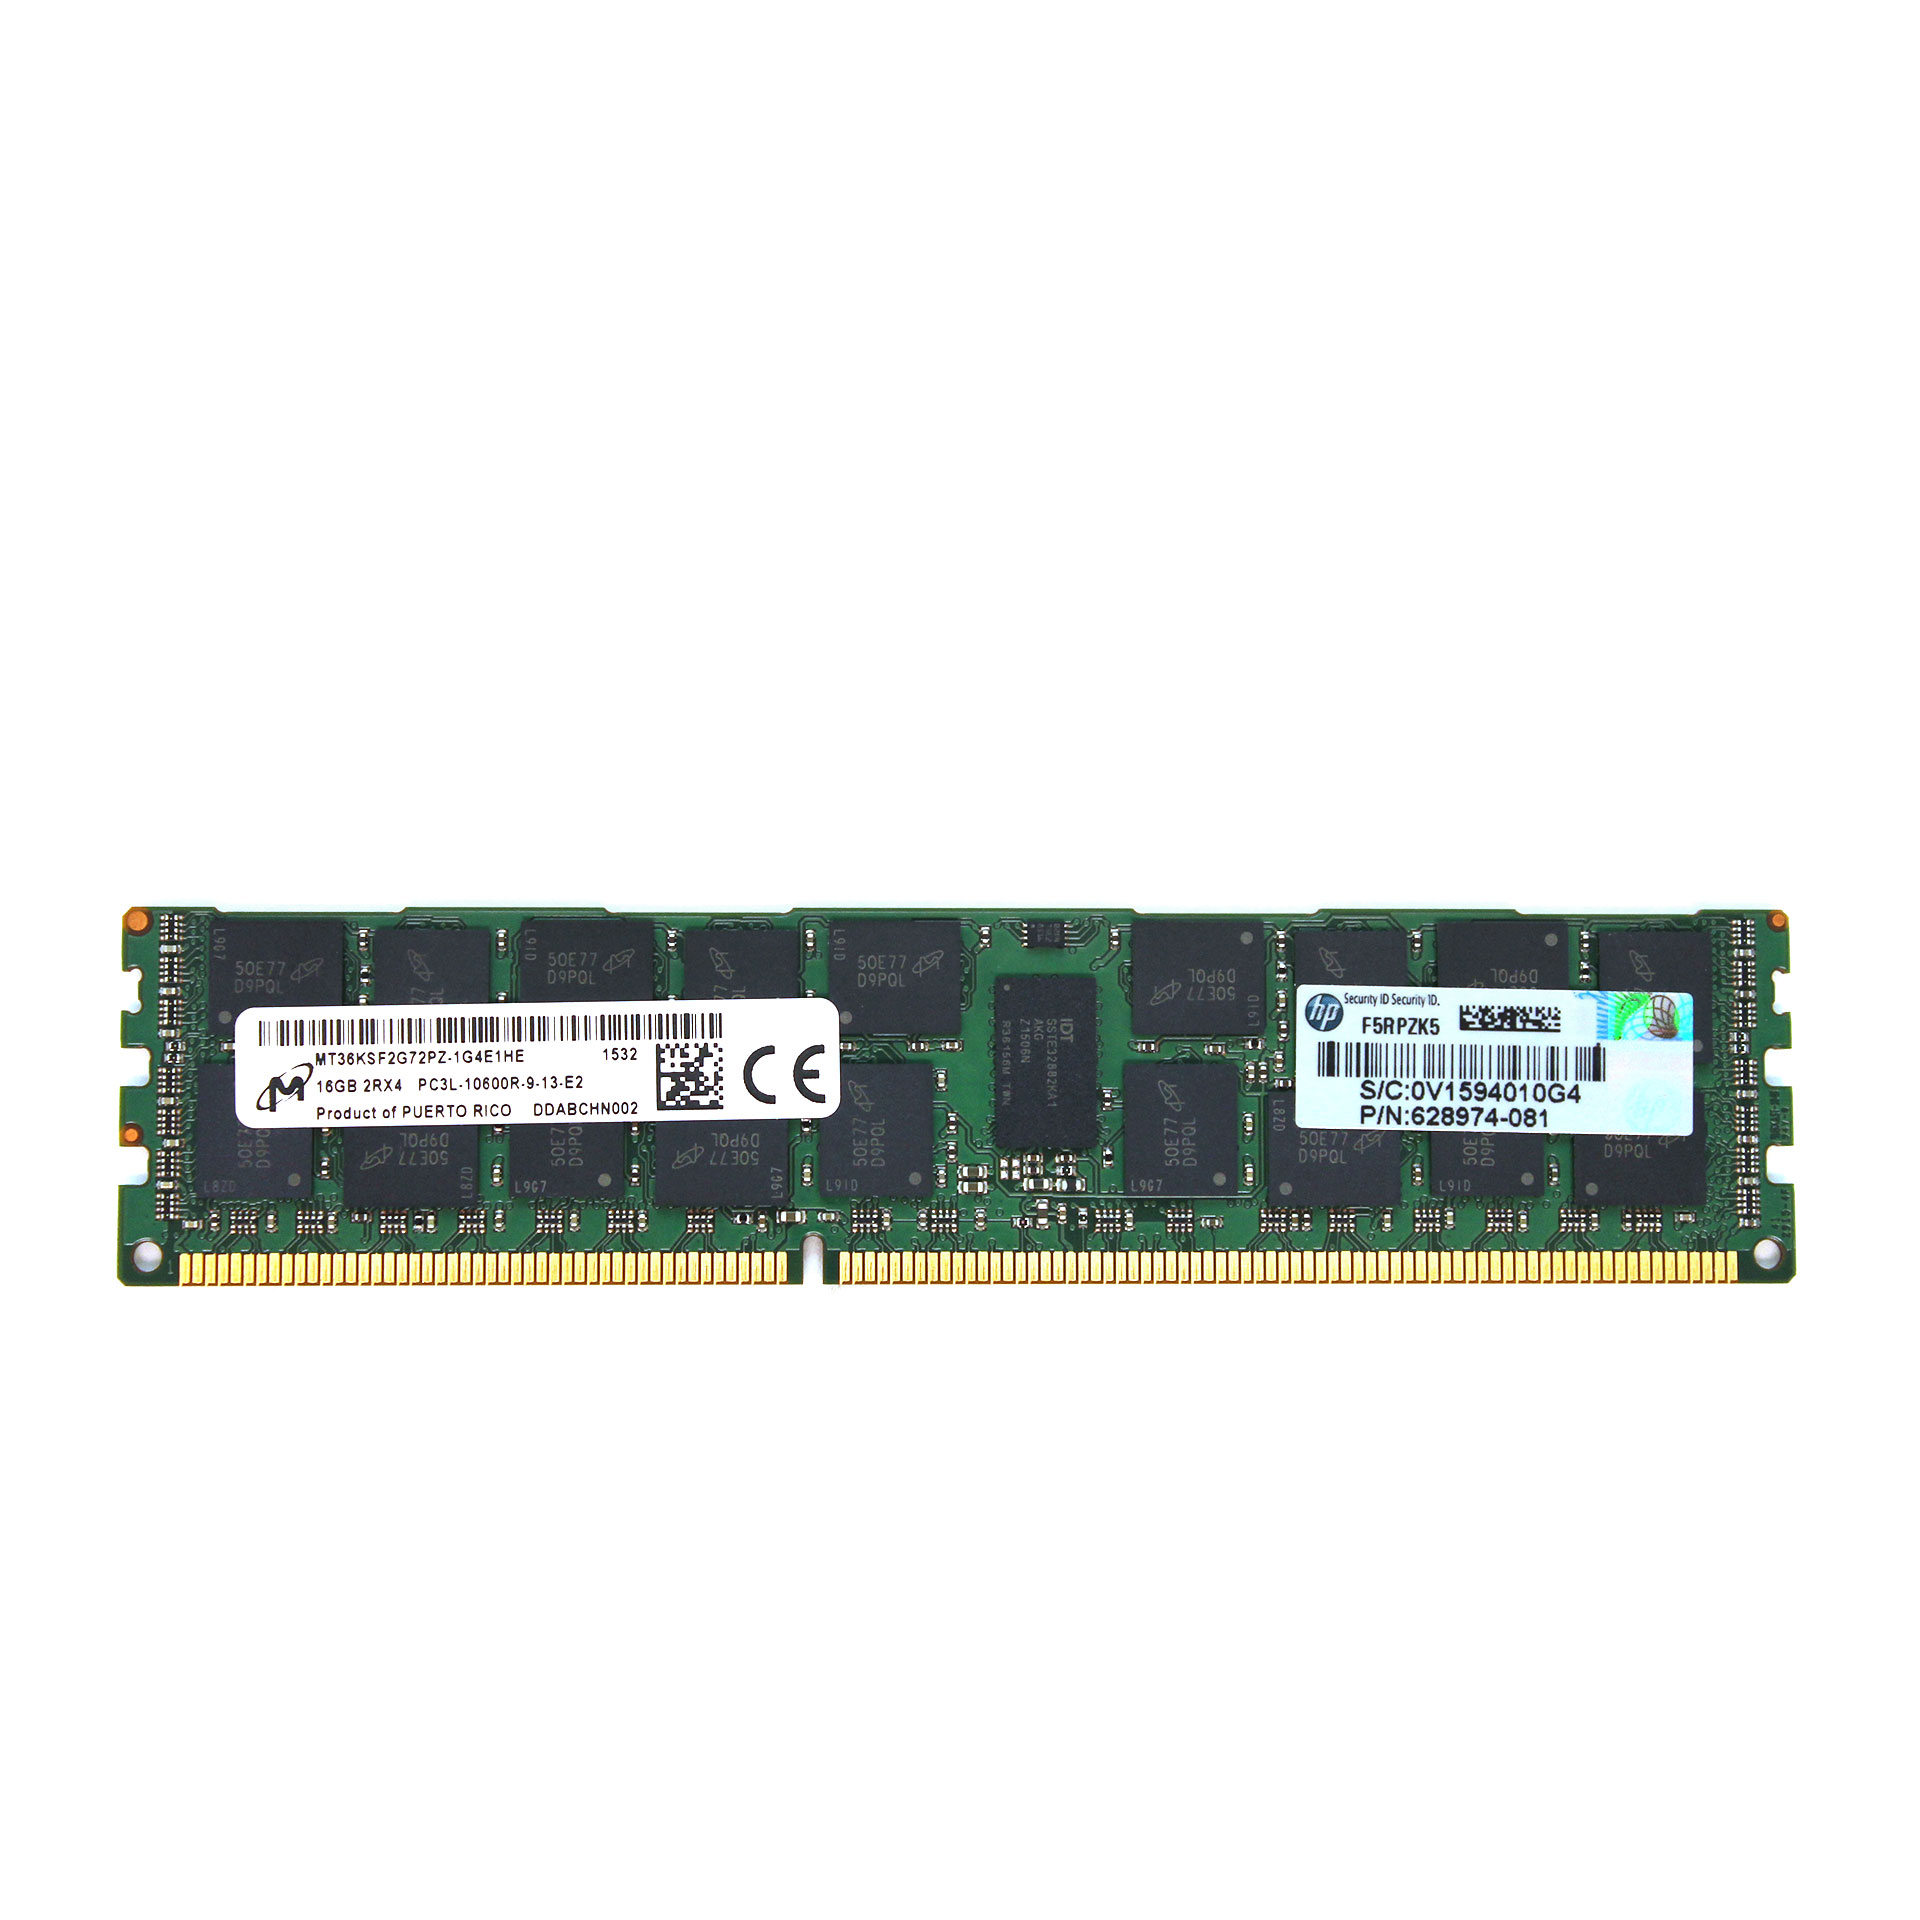 HP/Micron 16B RAM DDR3 2Rx4 PC3L-10600R 628974-081 Server Memory